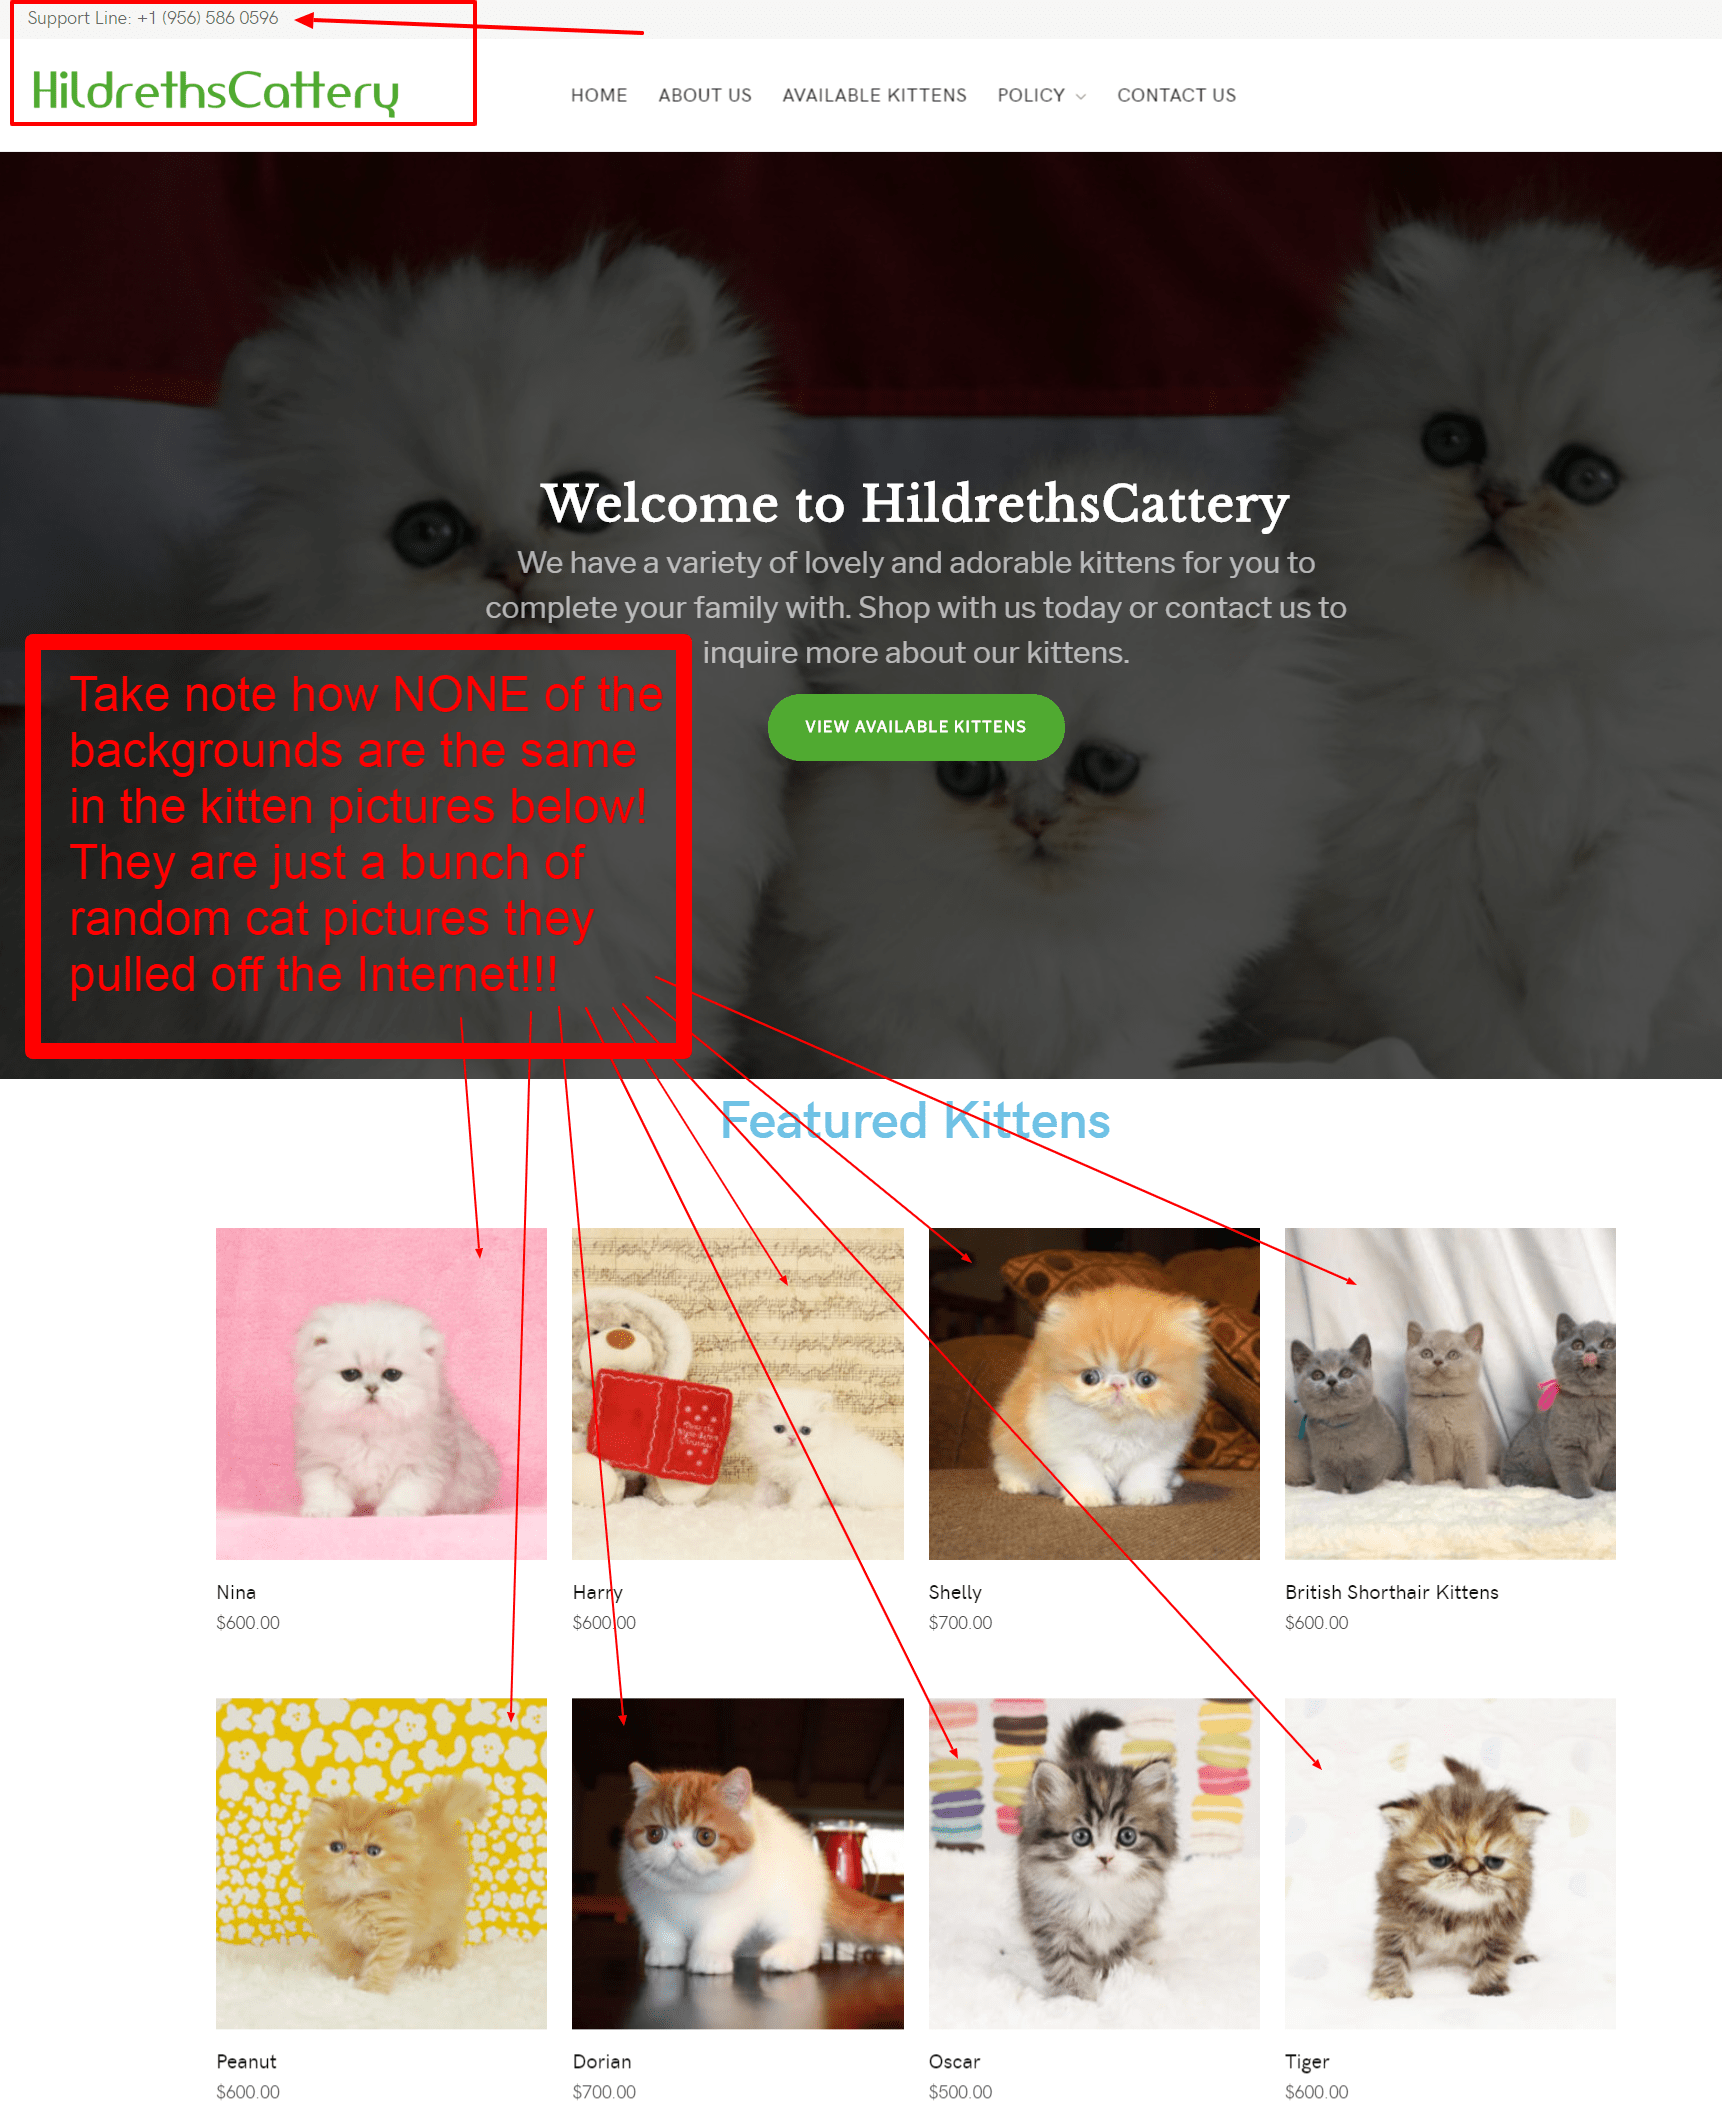 Hildreths Cattery Is a Scam Site